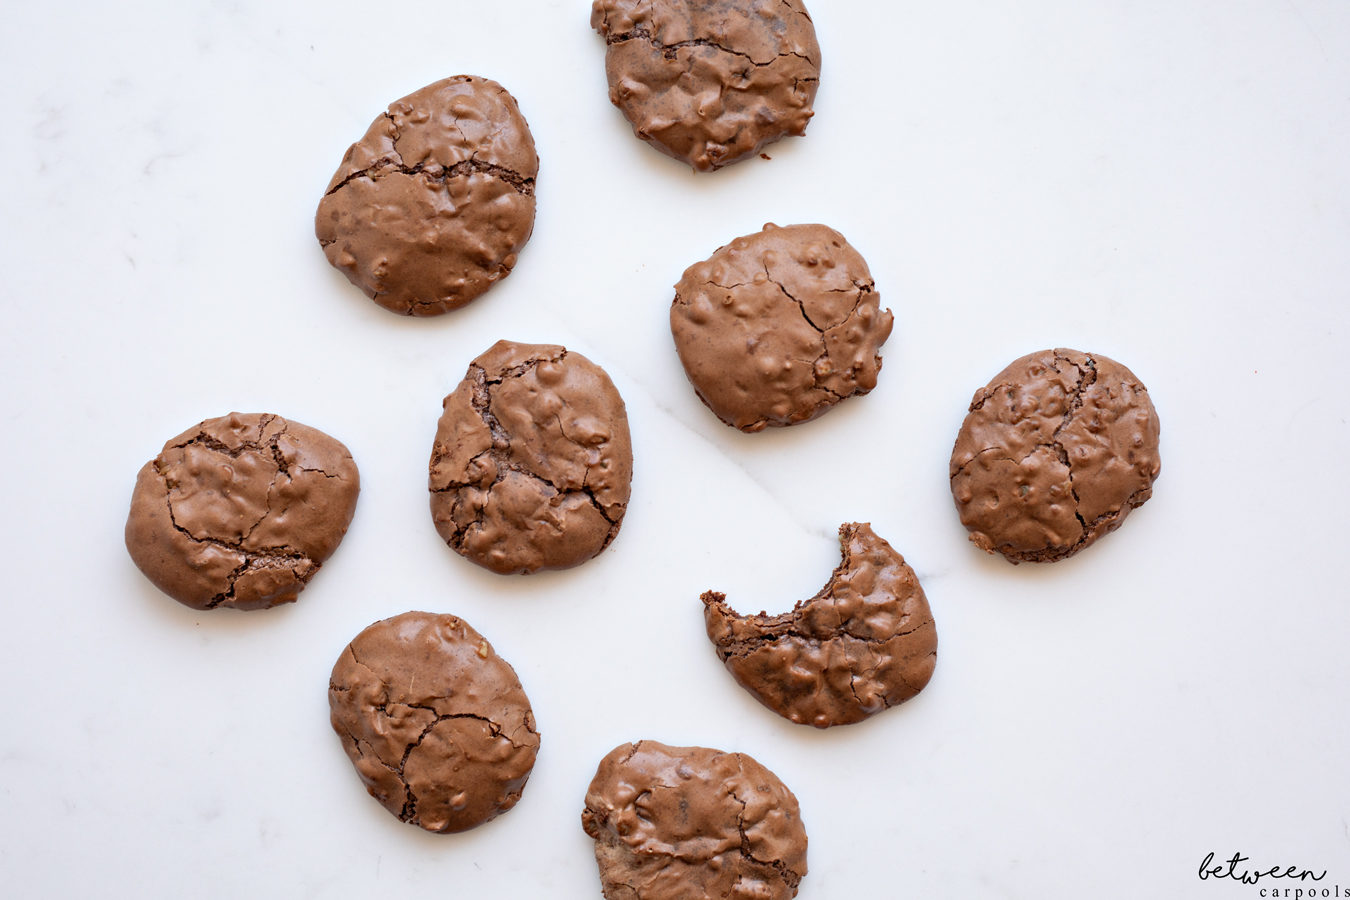 Chocolate Walnut Puffs and Coffee Ice Cream (We Can't Wait for Pesach to Enjoy This One!) Yes, these chocolate walnut cookies are amazing. Enjoy them as a snack or a complete dessert, served with coffee ice cream.